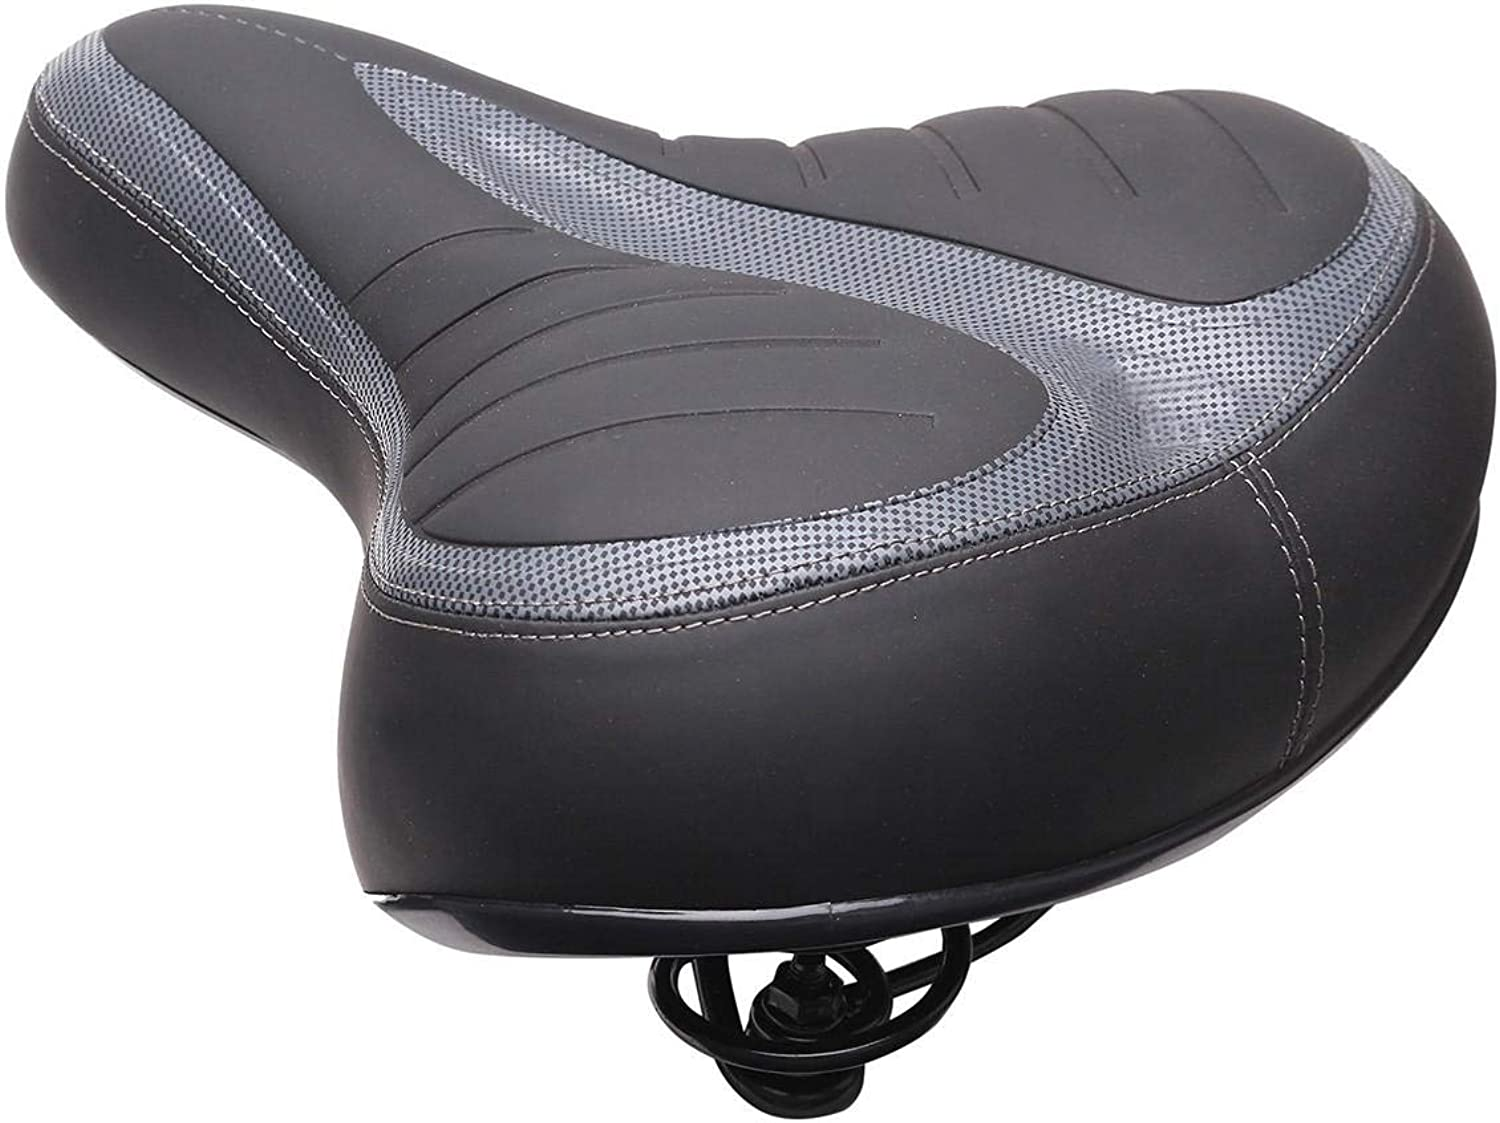 New Wide Big Bum Bike Gel Cruiser Extra Comfort Sporty Soft Pad Saddle Seat